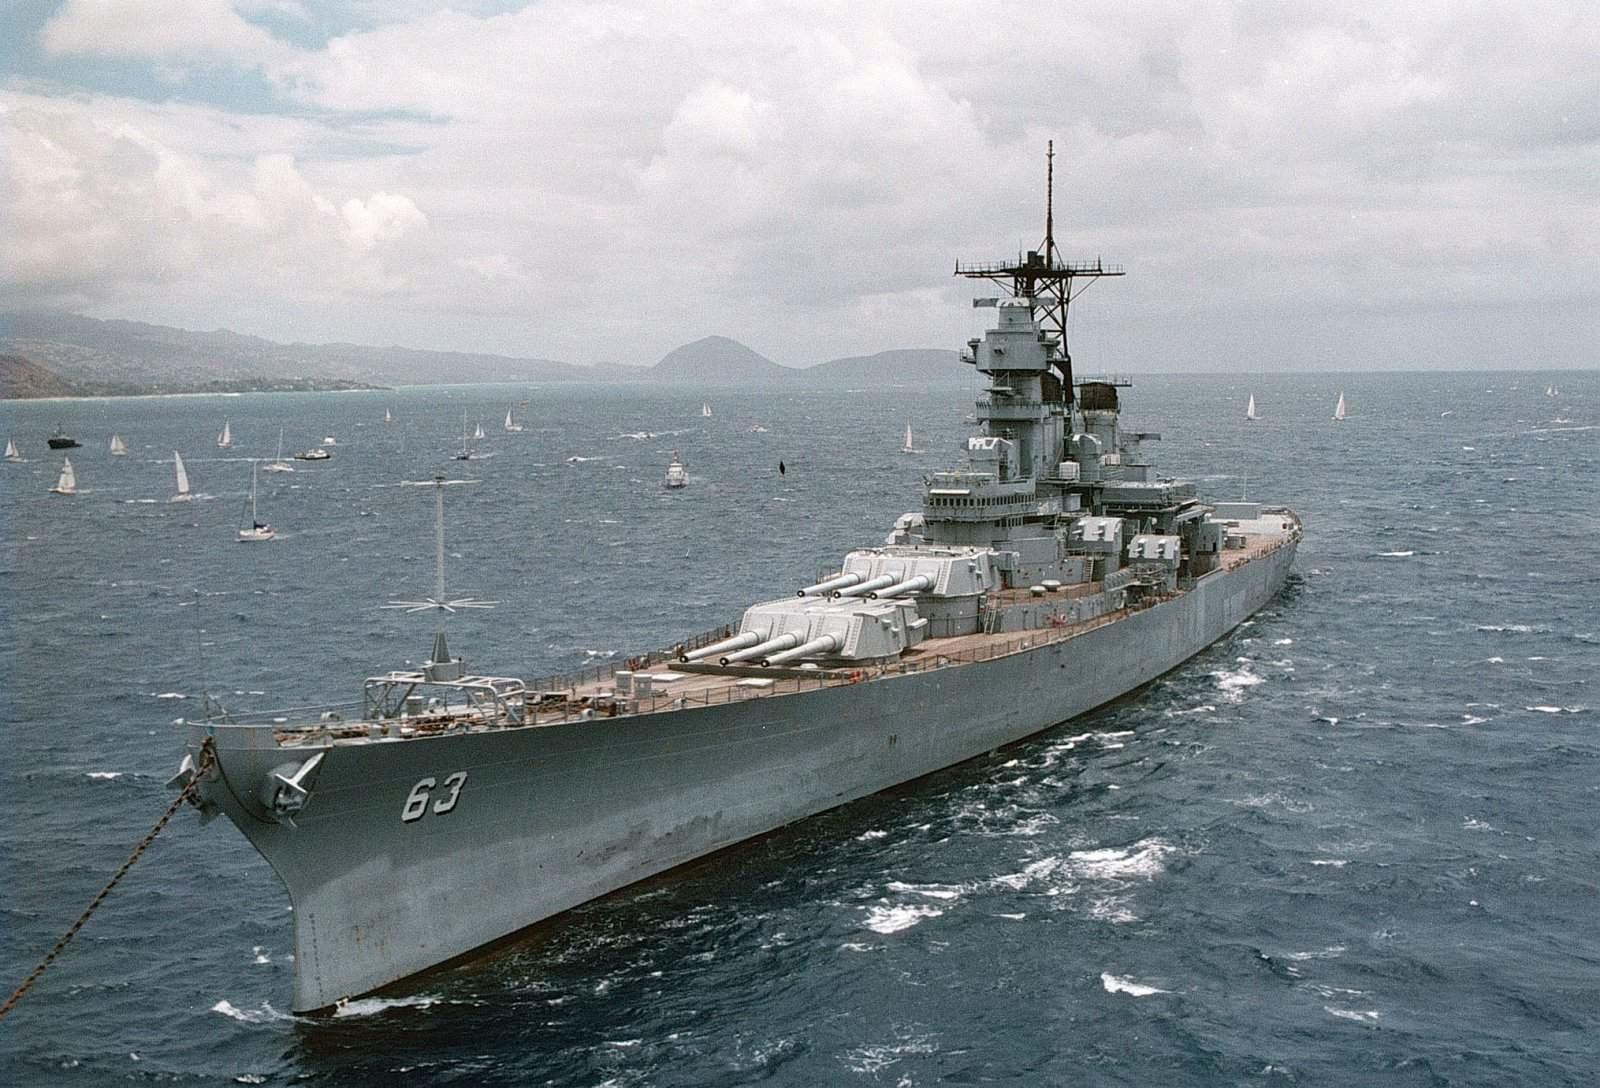 USS Missouri (BB-63) wallpapers HD quality